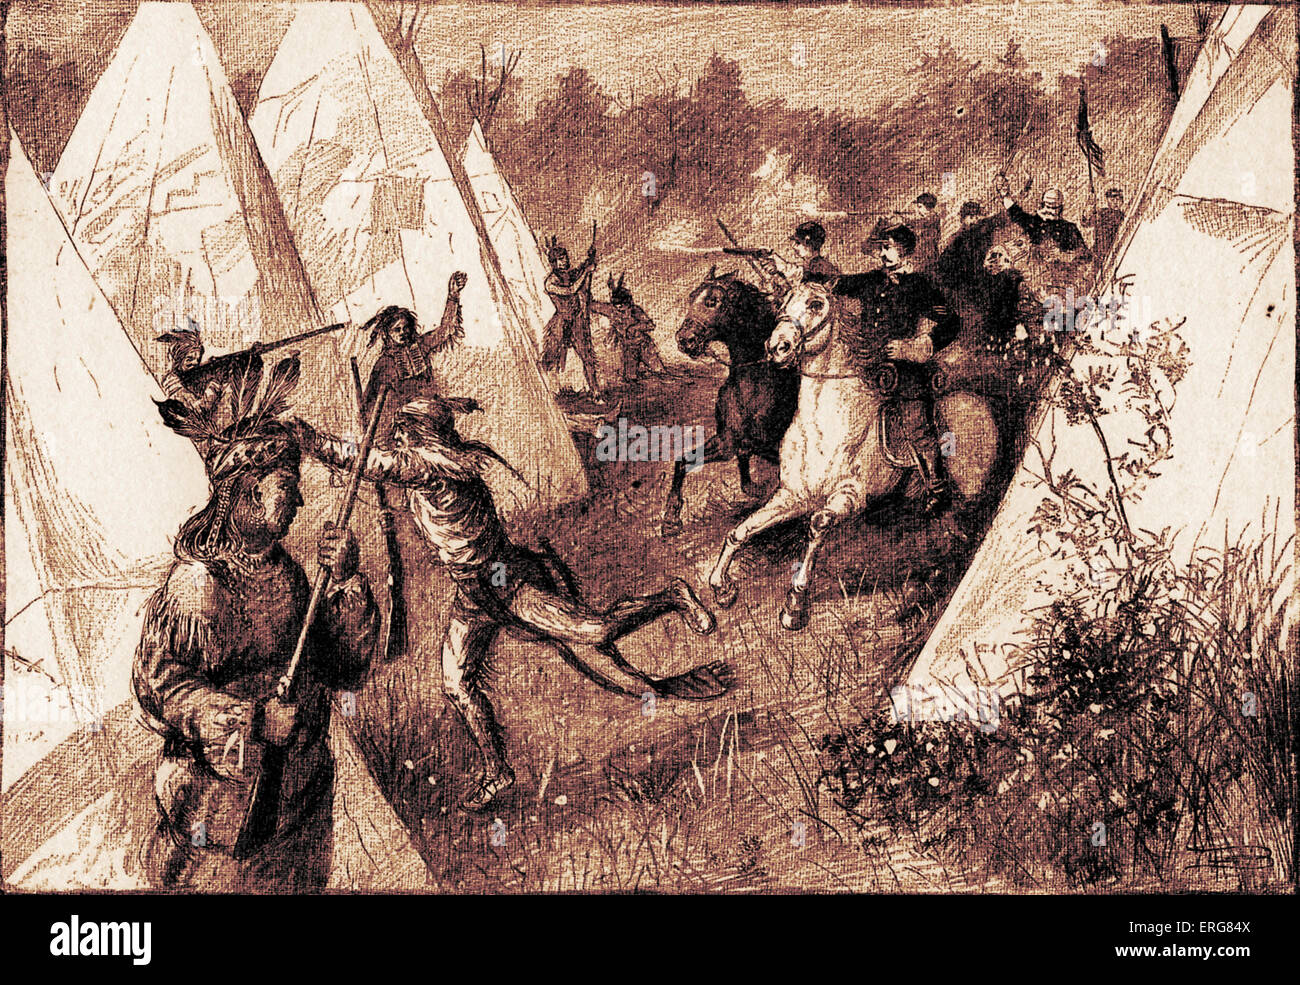 Red Indian Camp Stock Photos & Red Indian Camp Stock Images